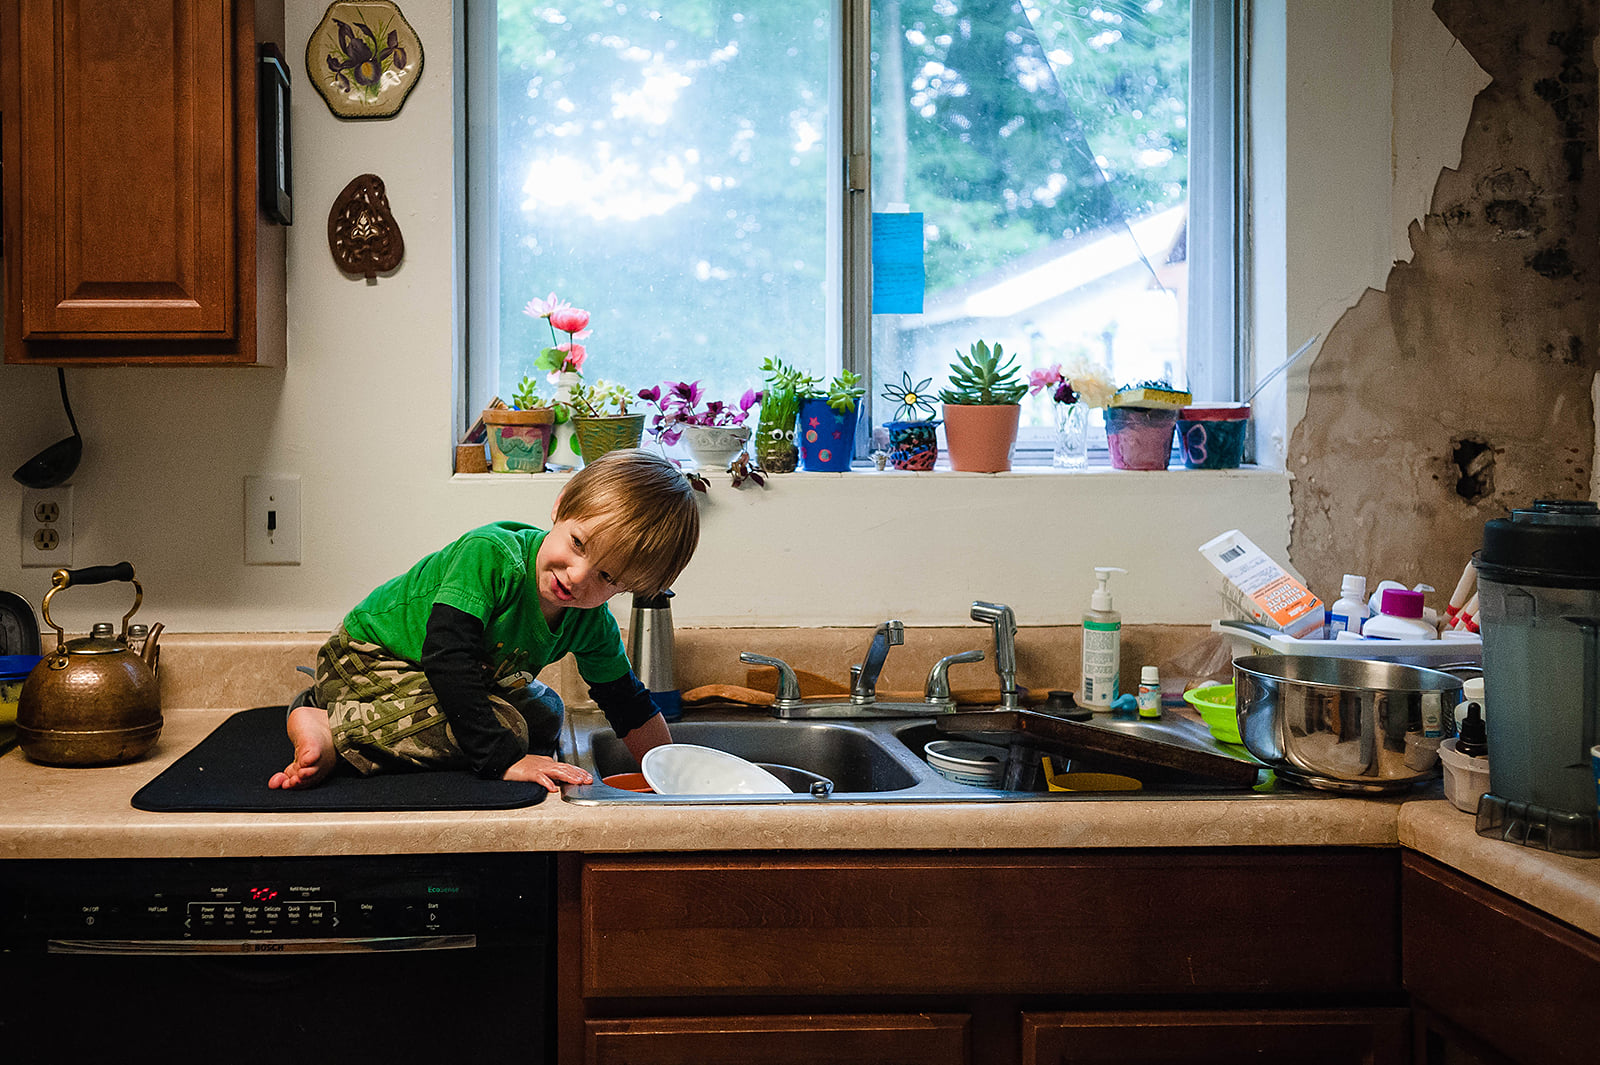 boy getting something out of sink